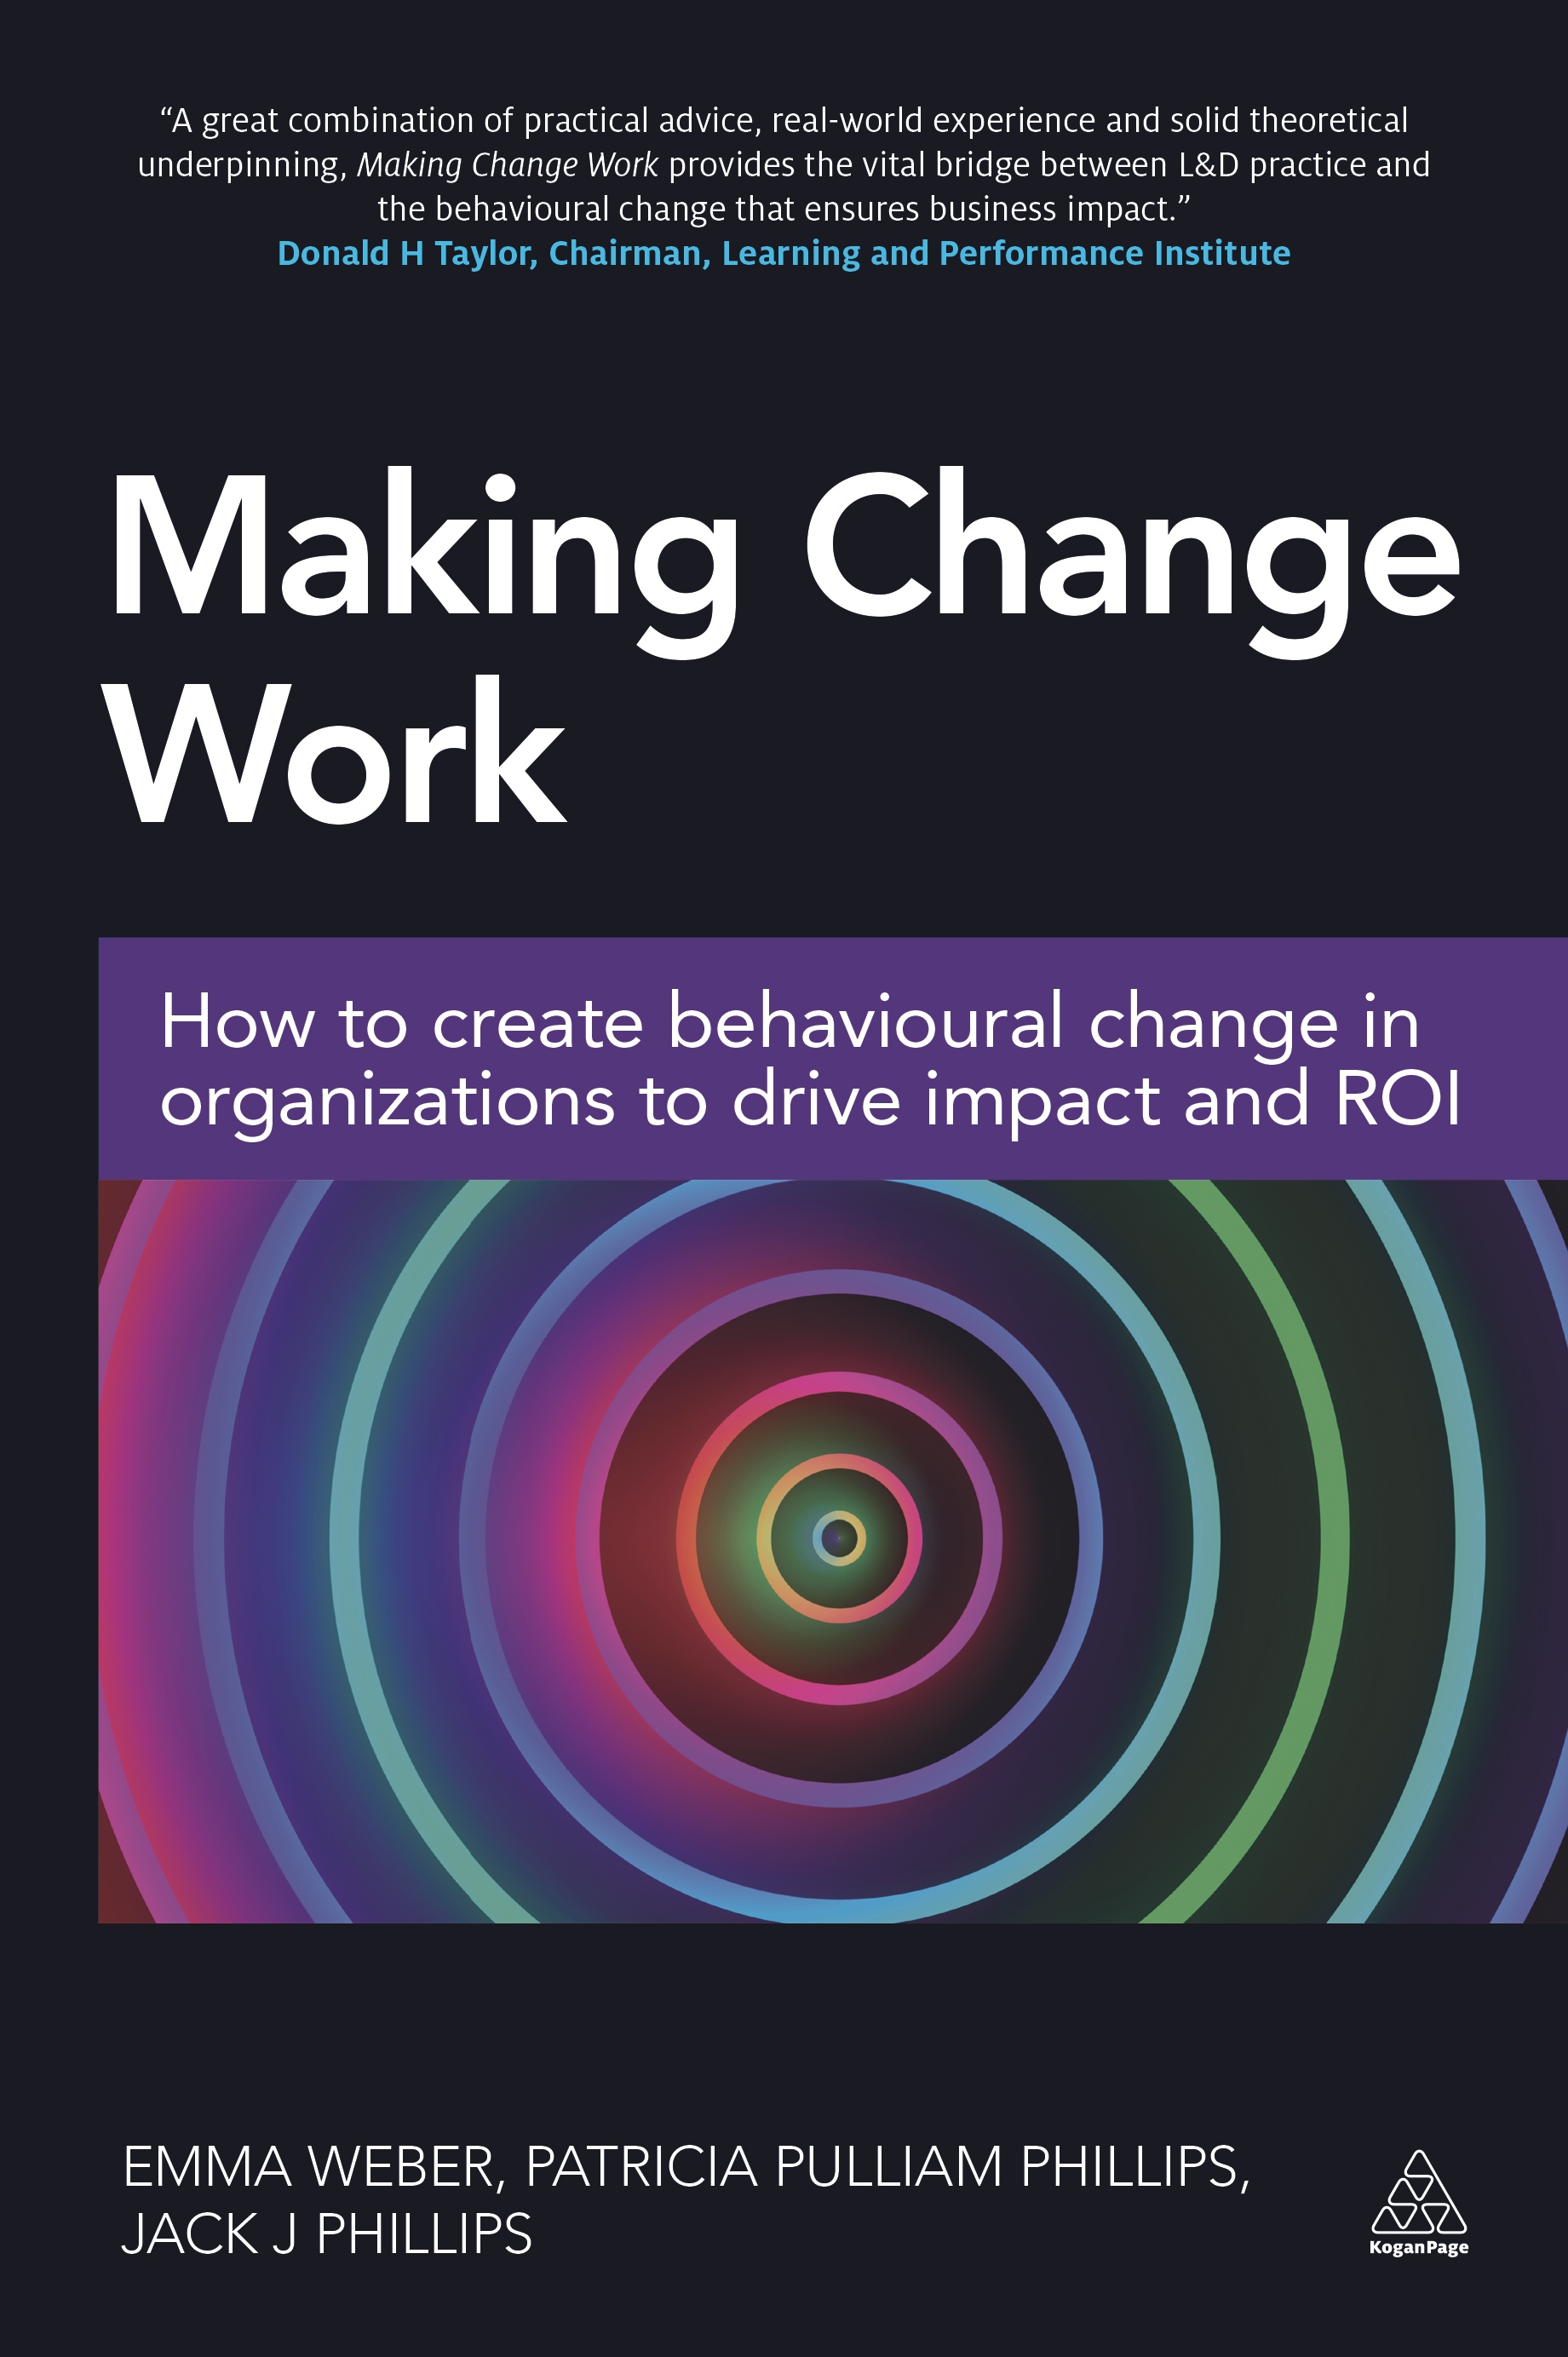 making-change-work-book-cover